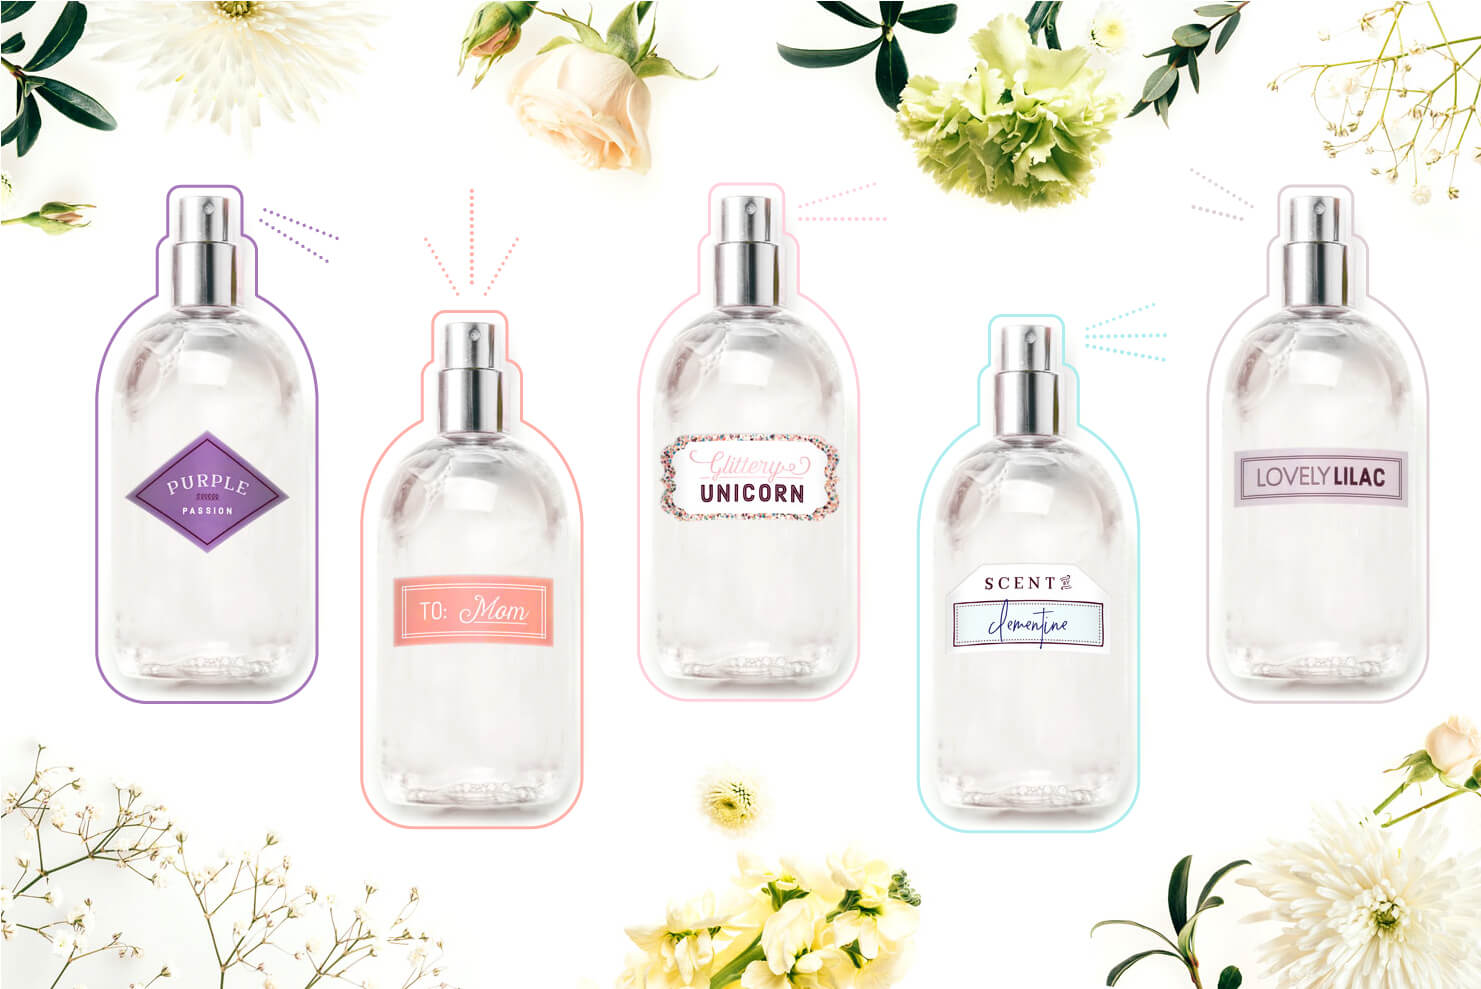 assorted perfume bottles with labels on floral background